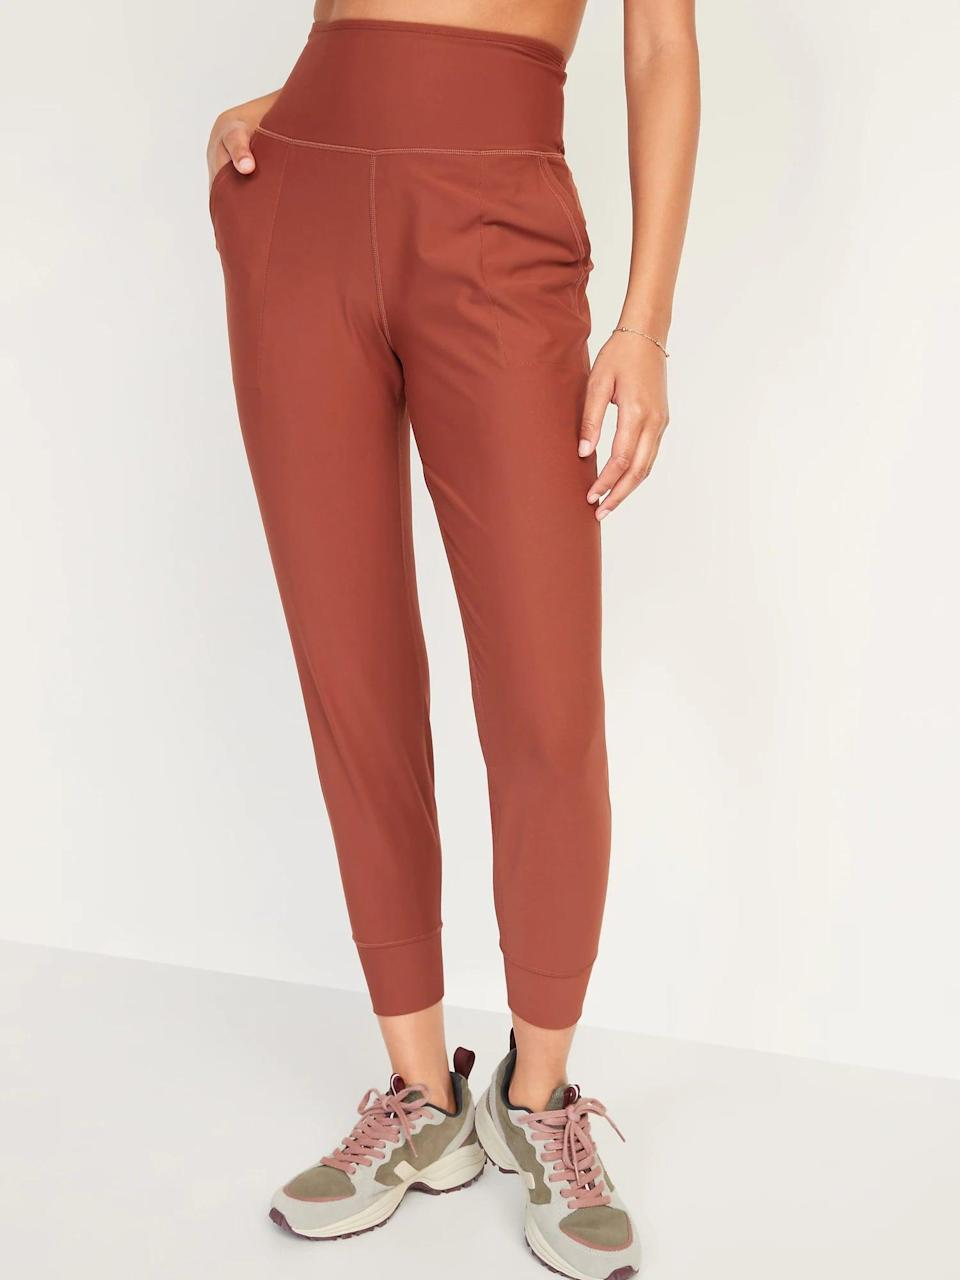 <p>If you like wearing workout pants all day, swap in coppery <span>Old Navy High-Waisted PowerSoft 7/8-Length Joggers</span> ($20, originally $40) so you can squeeze in some fitness in between lounging and working from home.</p>